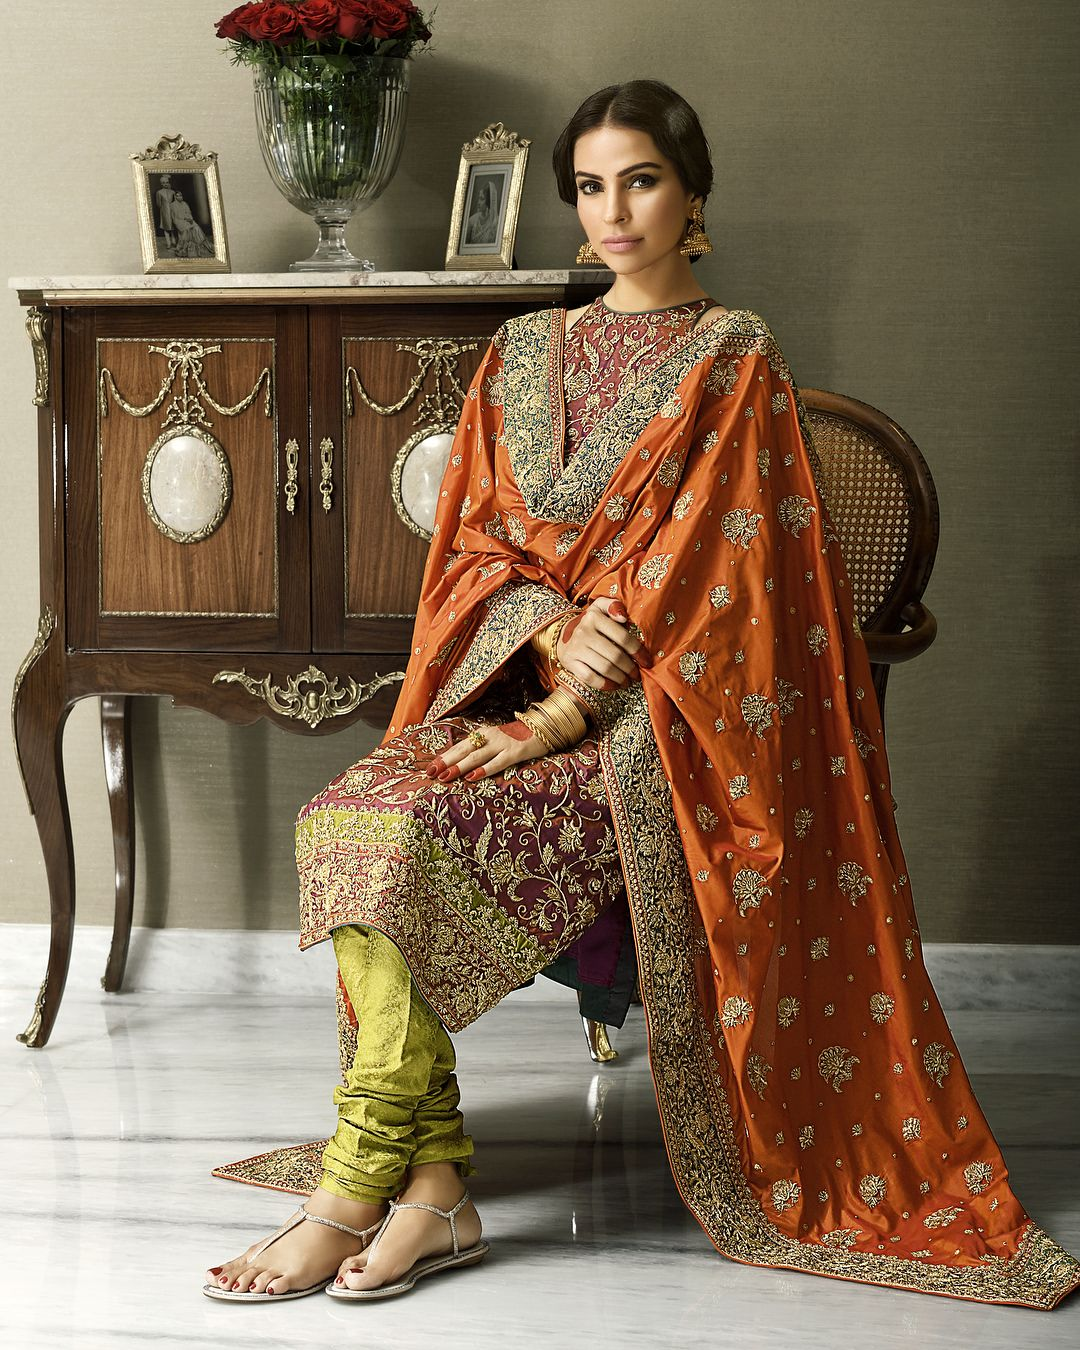 New styles of bridal dresses in pakistan lahore